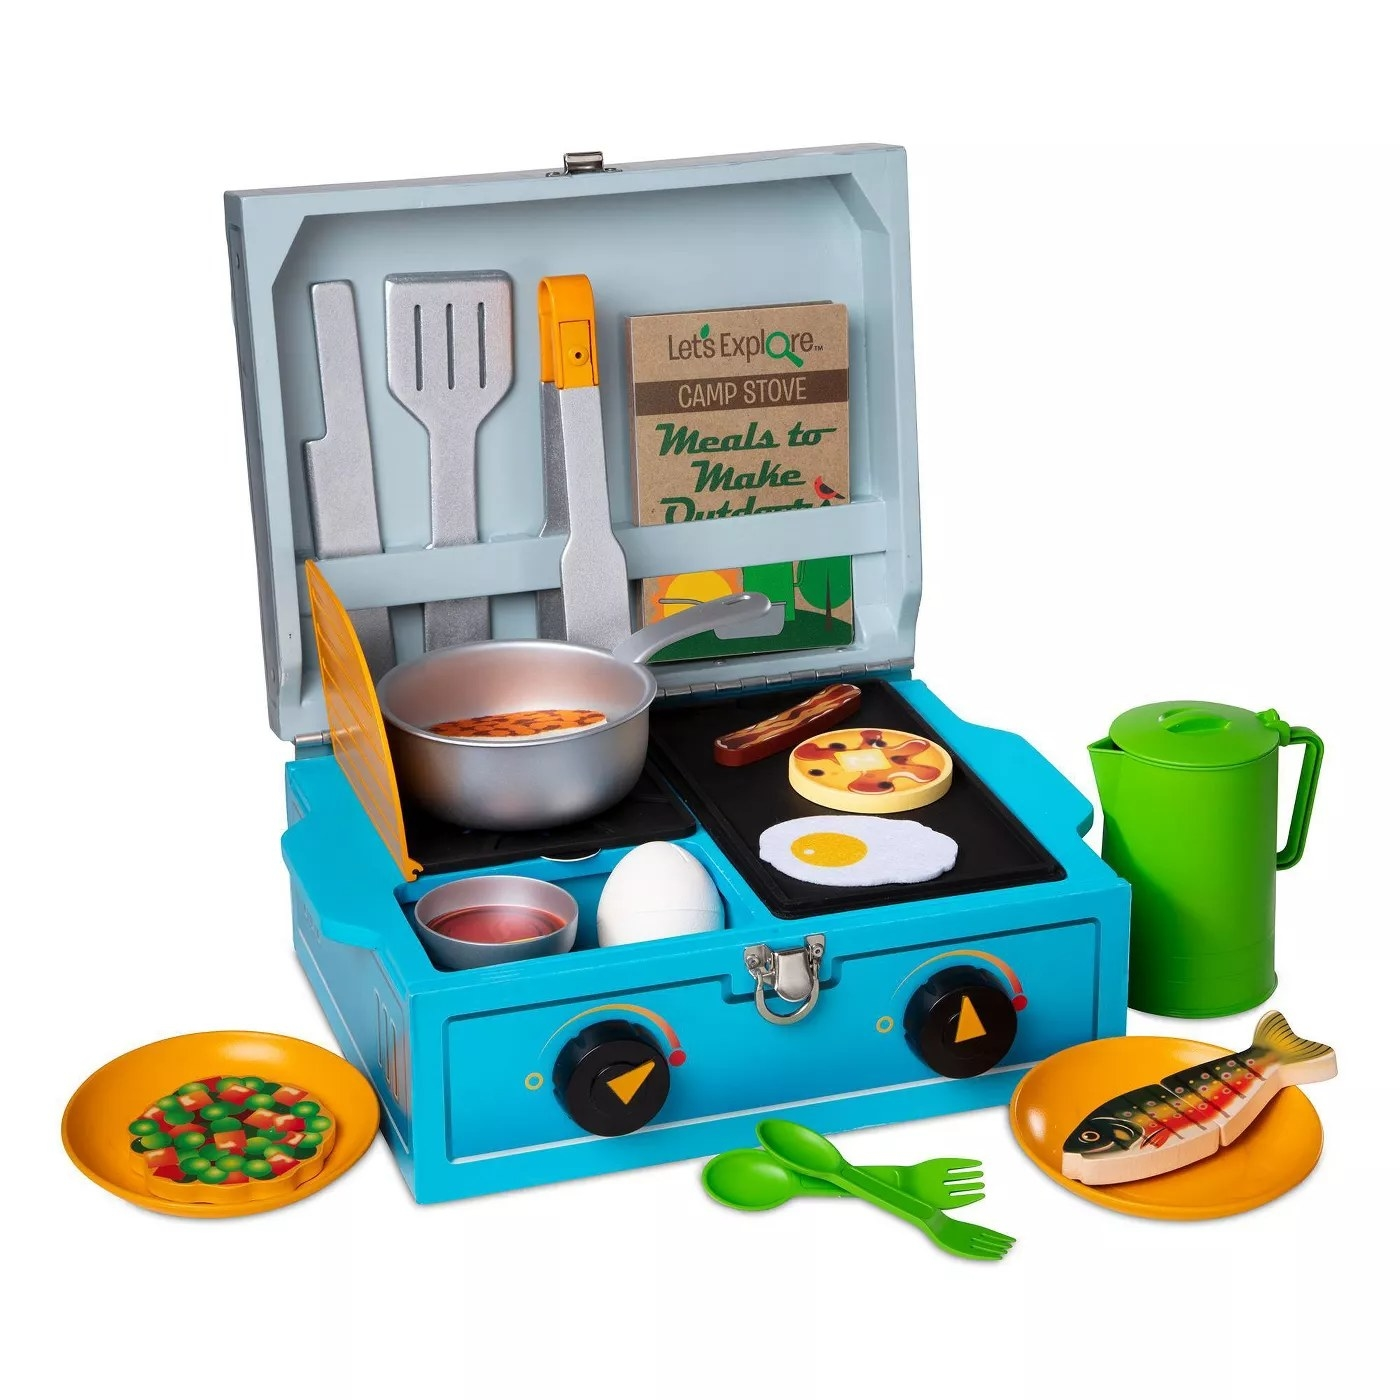 A 24-piece pretend play wooden camp stove with cookware and utensils